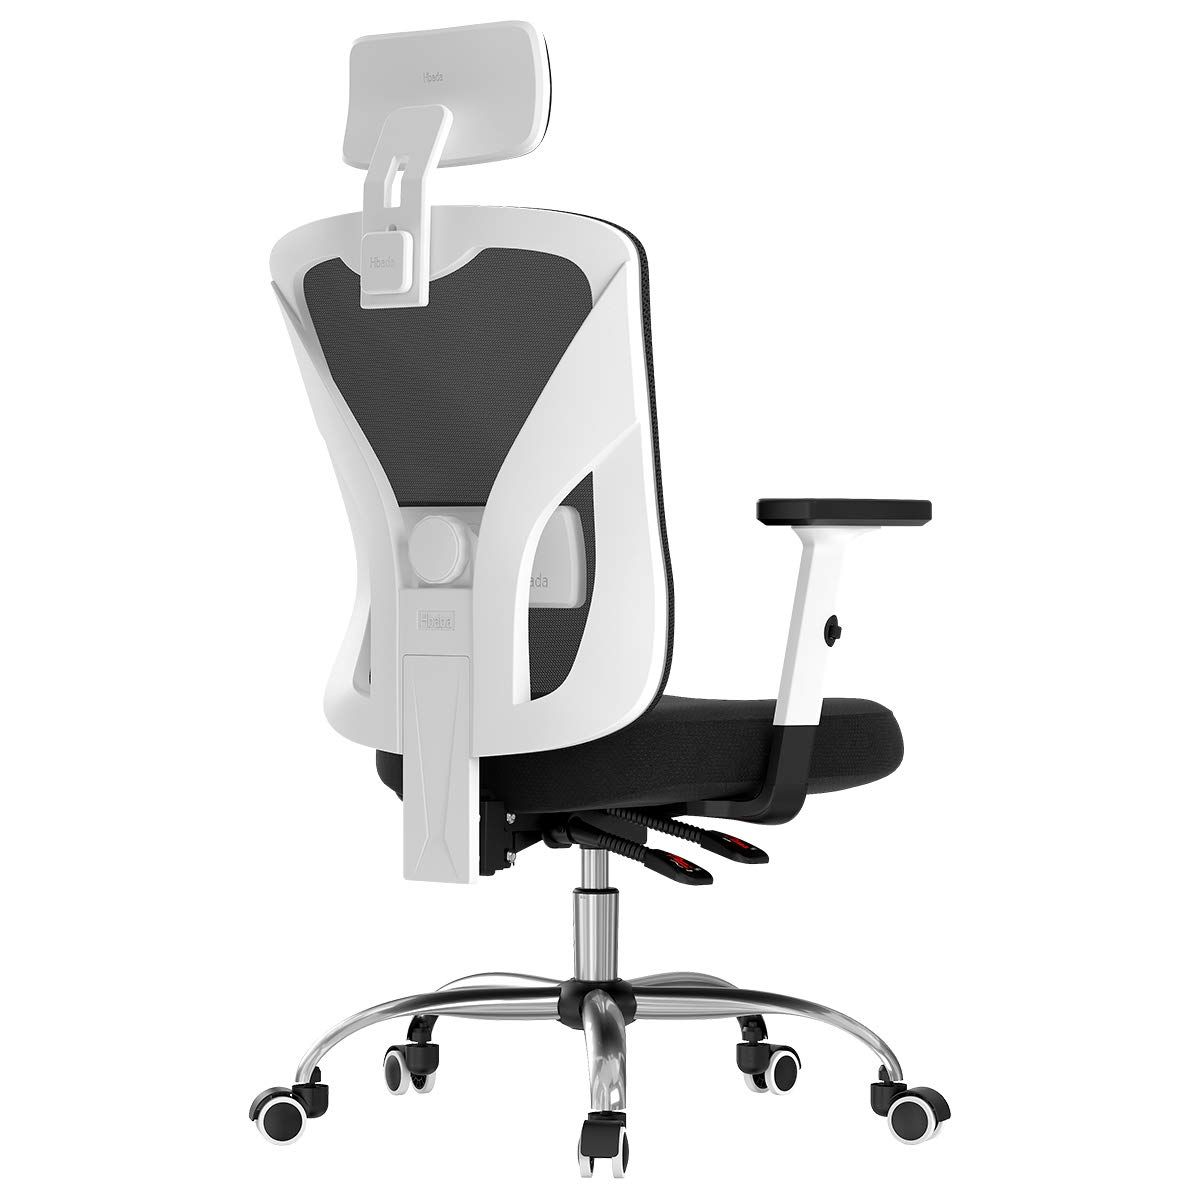 Hbada Ergonomic Office Desk Chair With Adjustable Armrest Lumbar